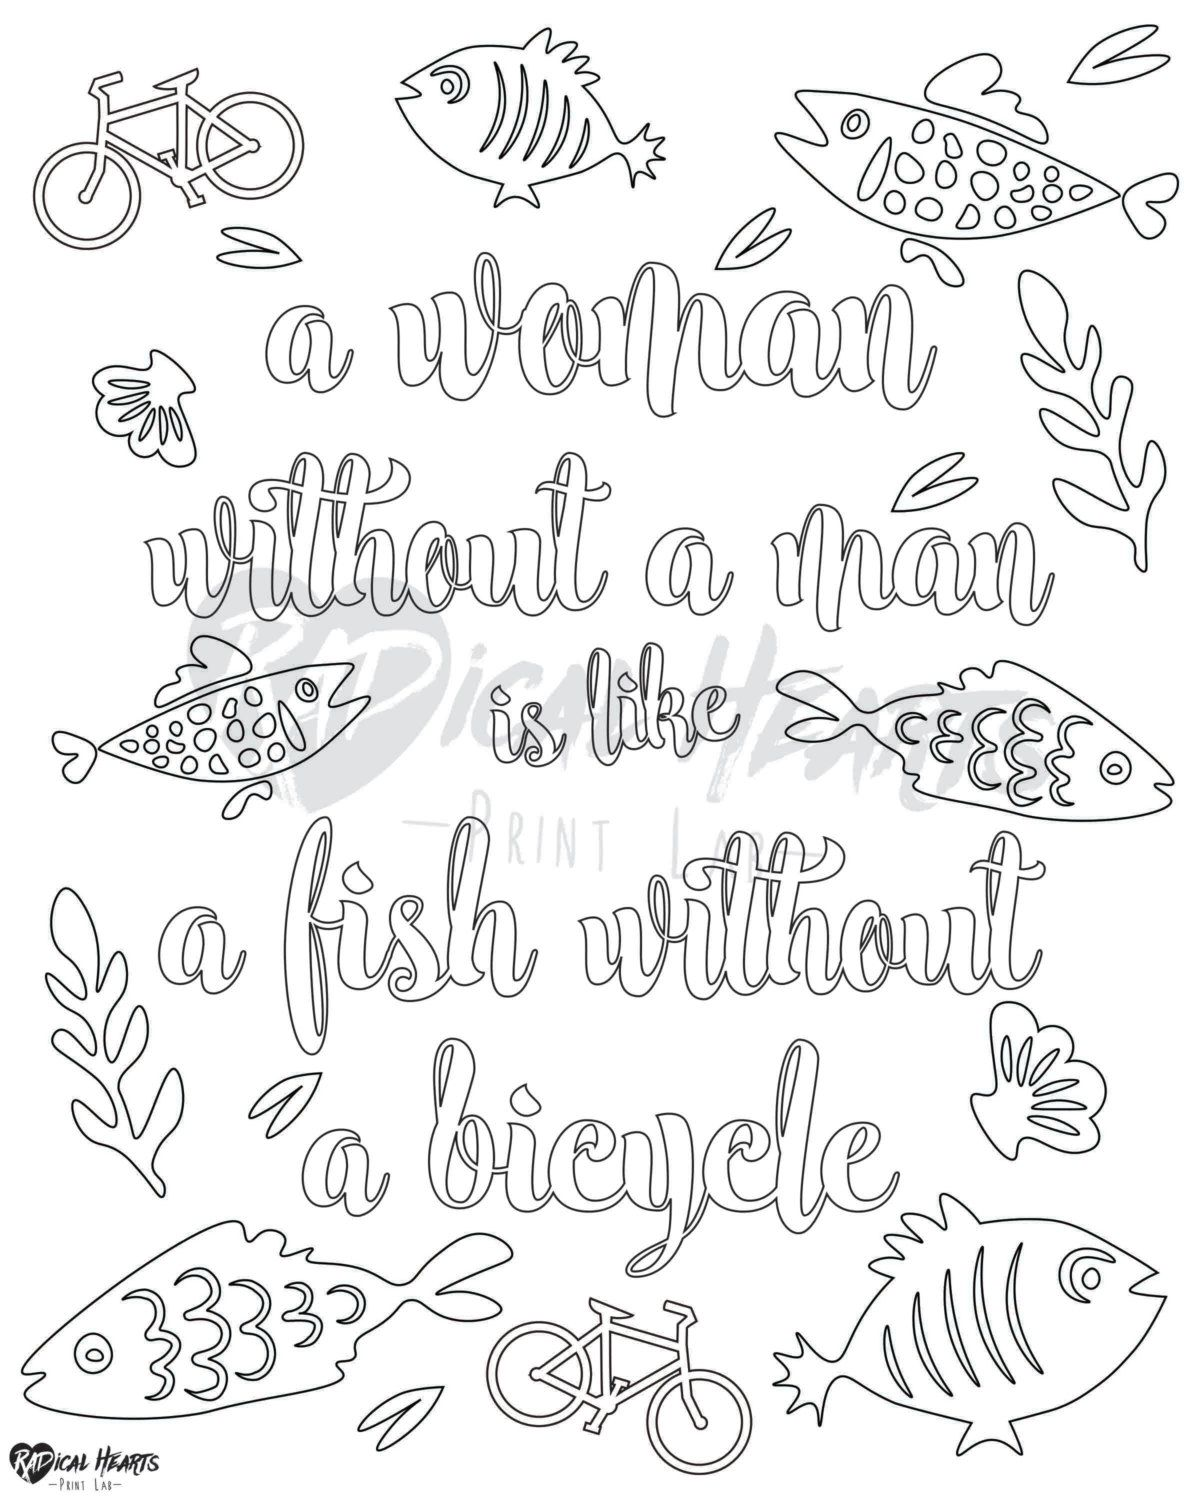 Feminist printable coloring page quirky by radheartsprintlab